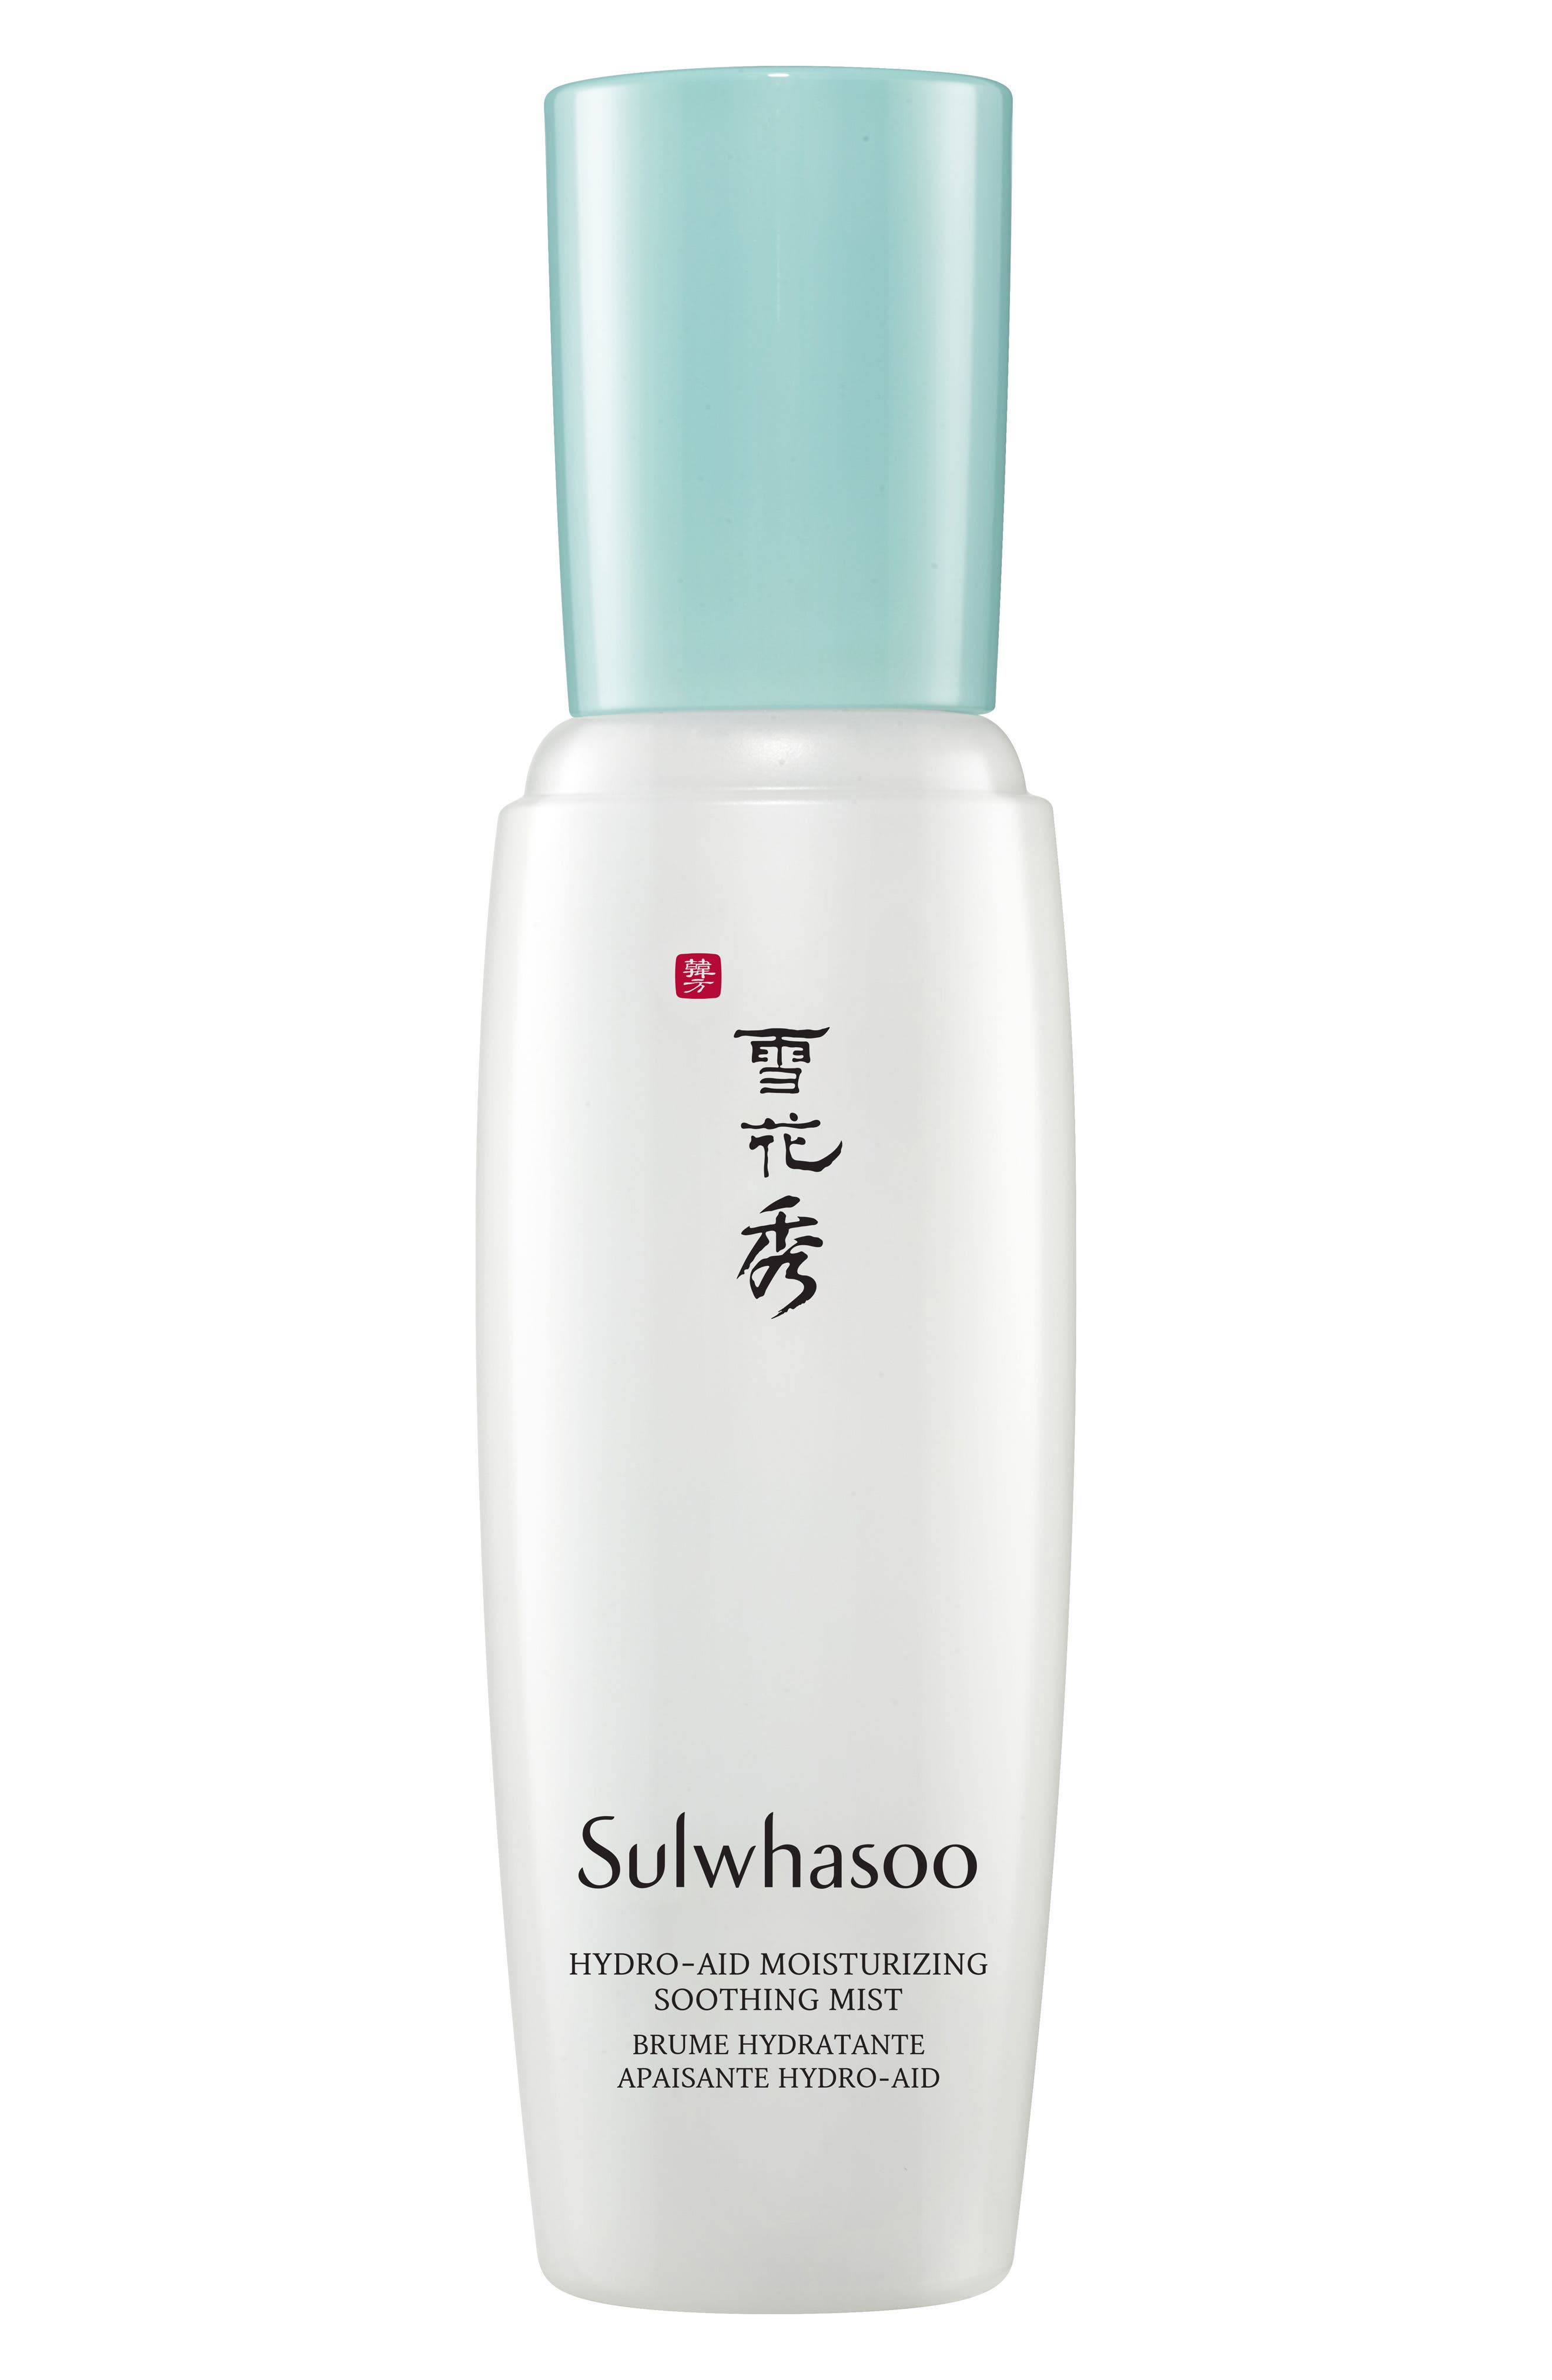 SULWHASOO, Hydro-Aid Moisturizing Soothing Mist, Main thumbnail 1, color, NO COLOR